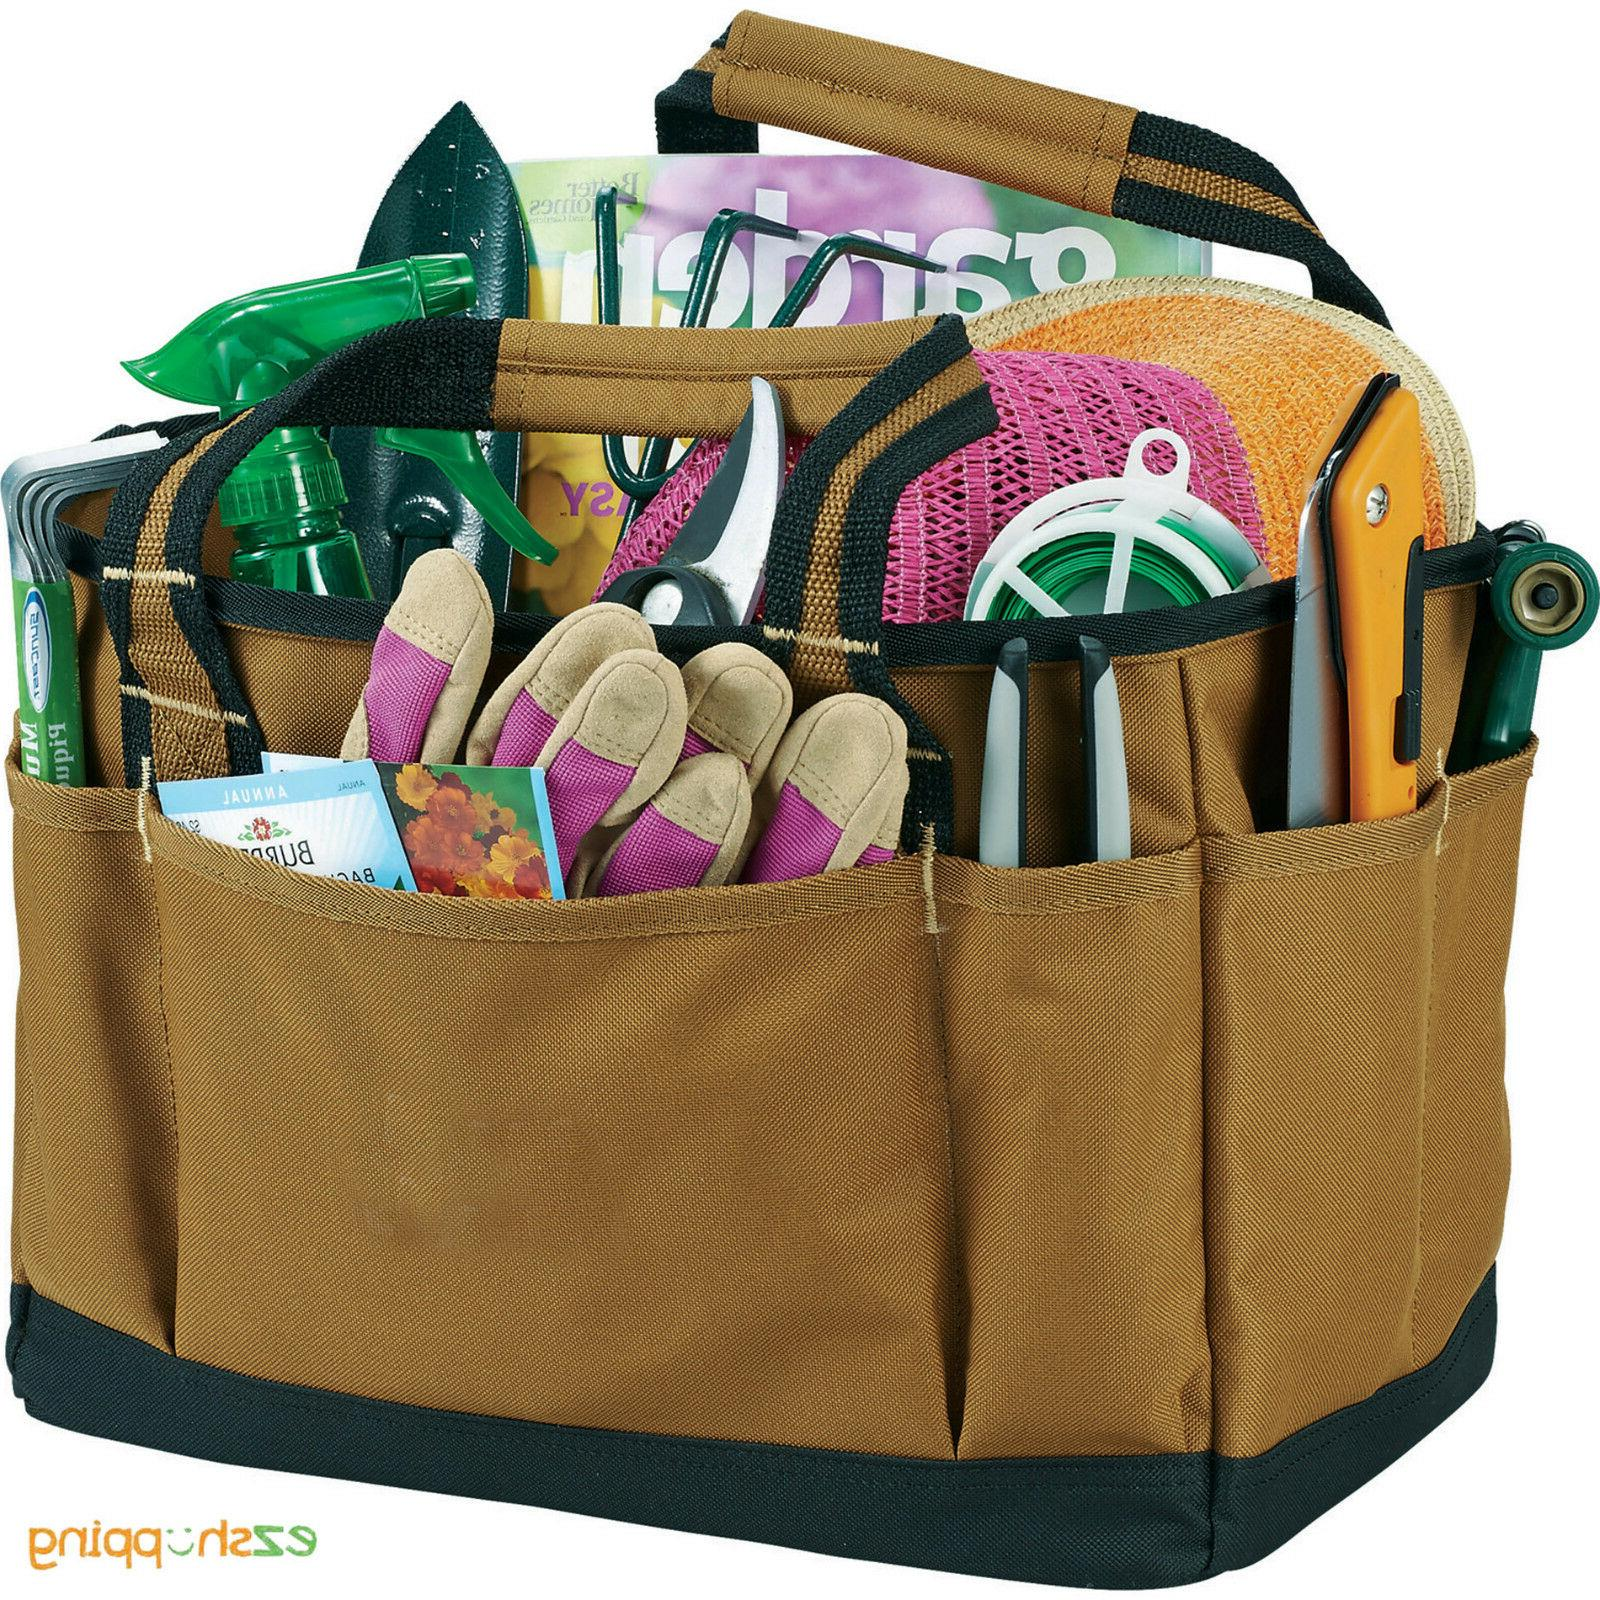 New Utility Tool Tote Bag Shipping